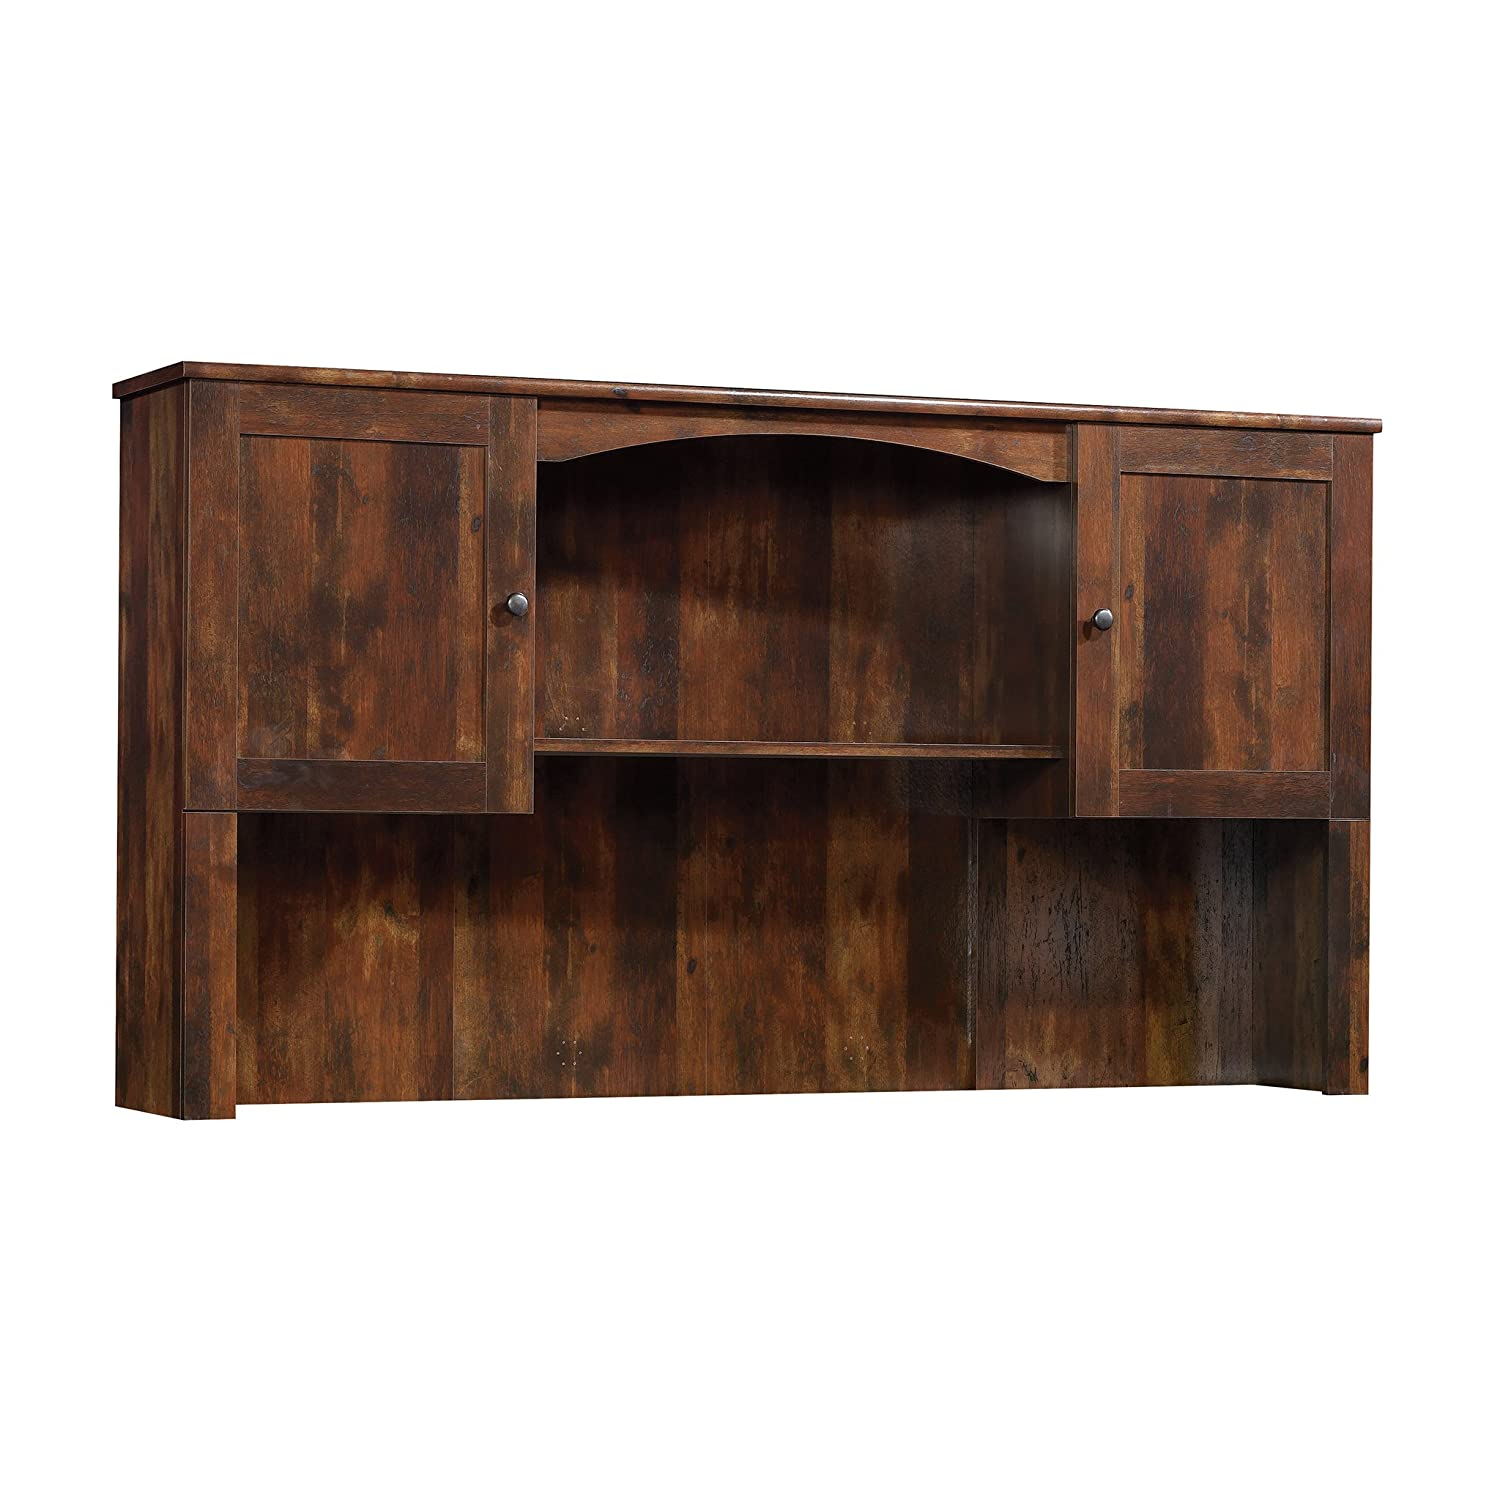 Sauder 420473 Harbor View Hutch (only), Curado Cherry Sauder Woodworking